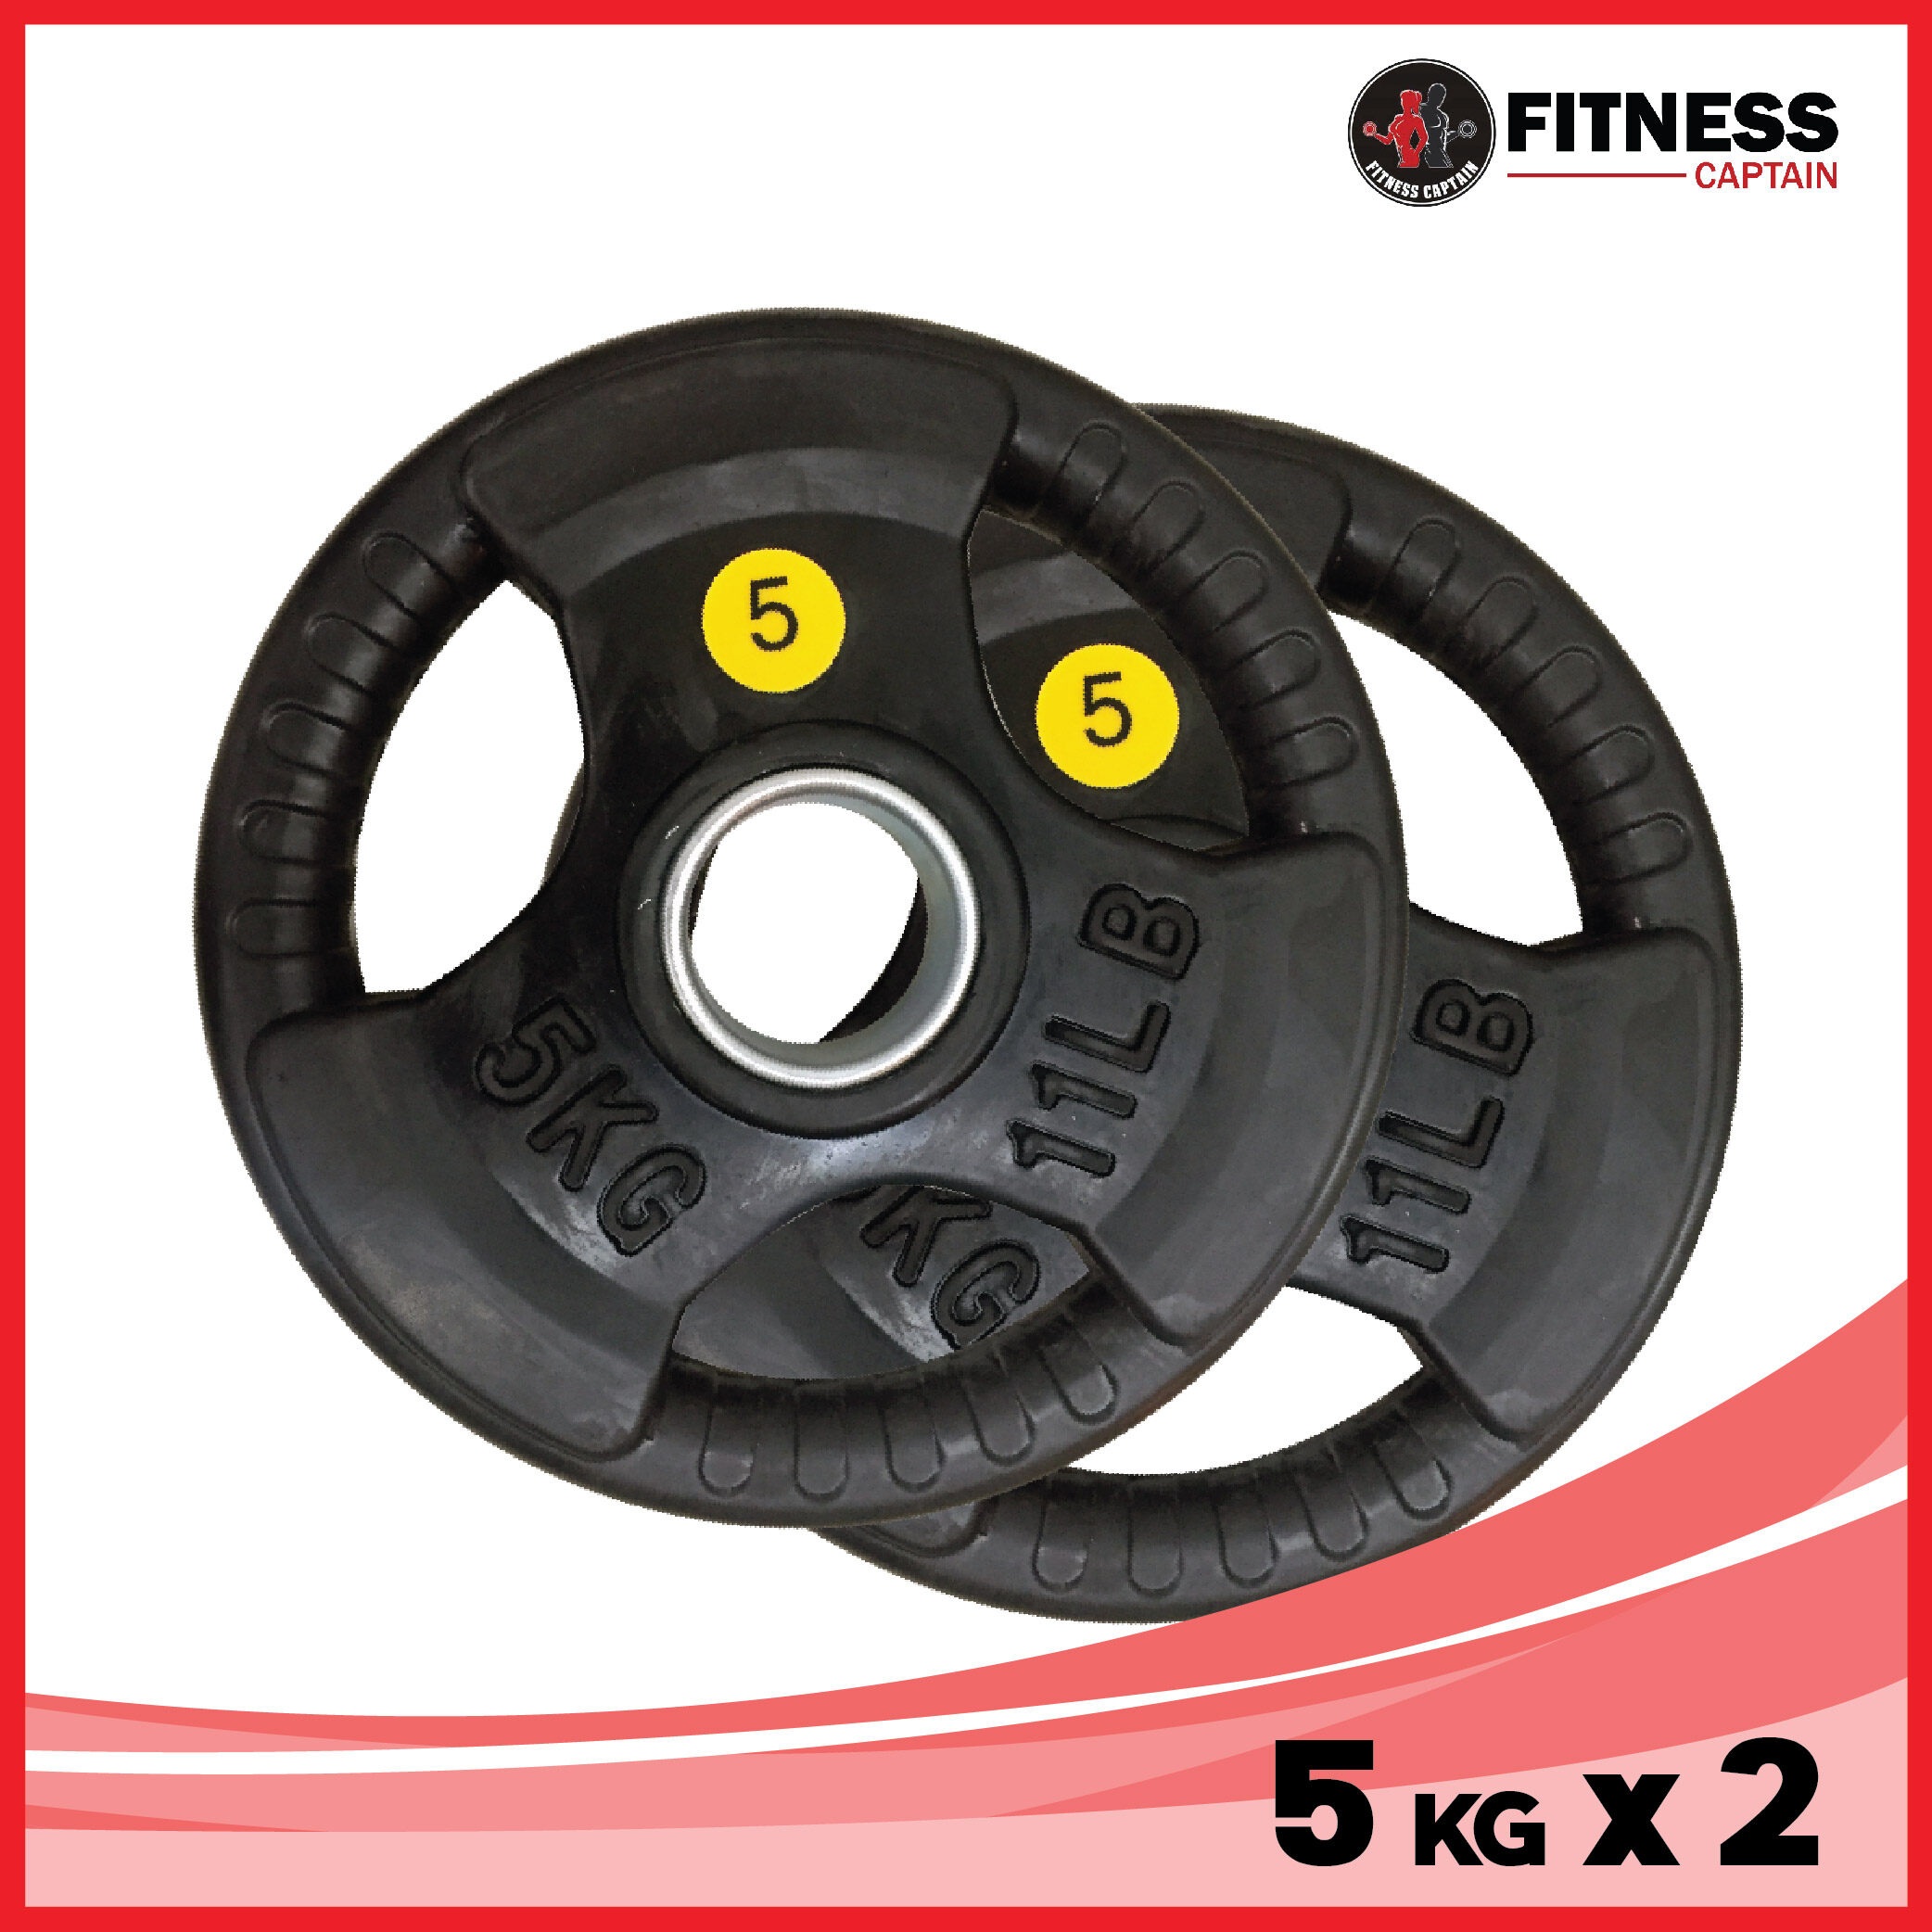 Fitness Captain 2 ( 2 x 5kg ) Gym Olympic Rubber Weight Plate 5kg Set of 2 ( 2 x 5kg )